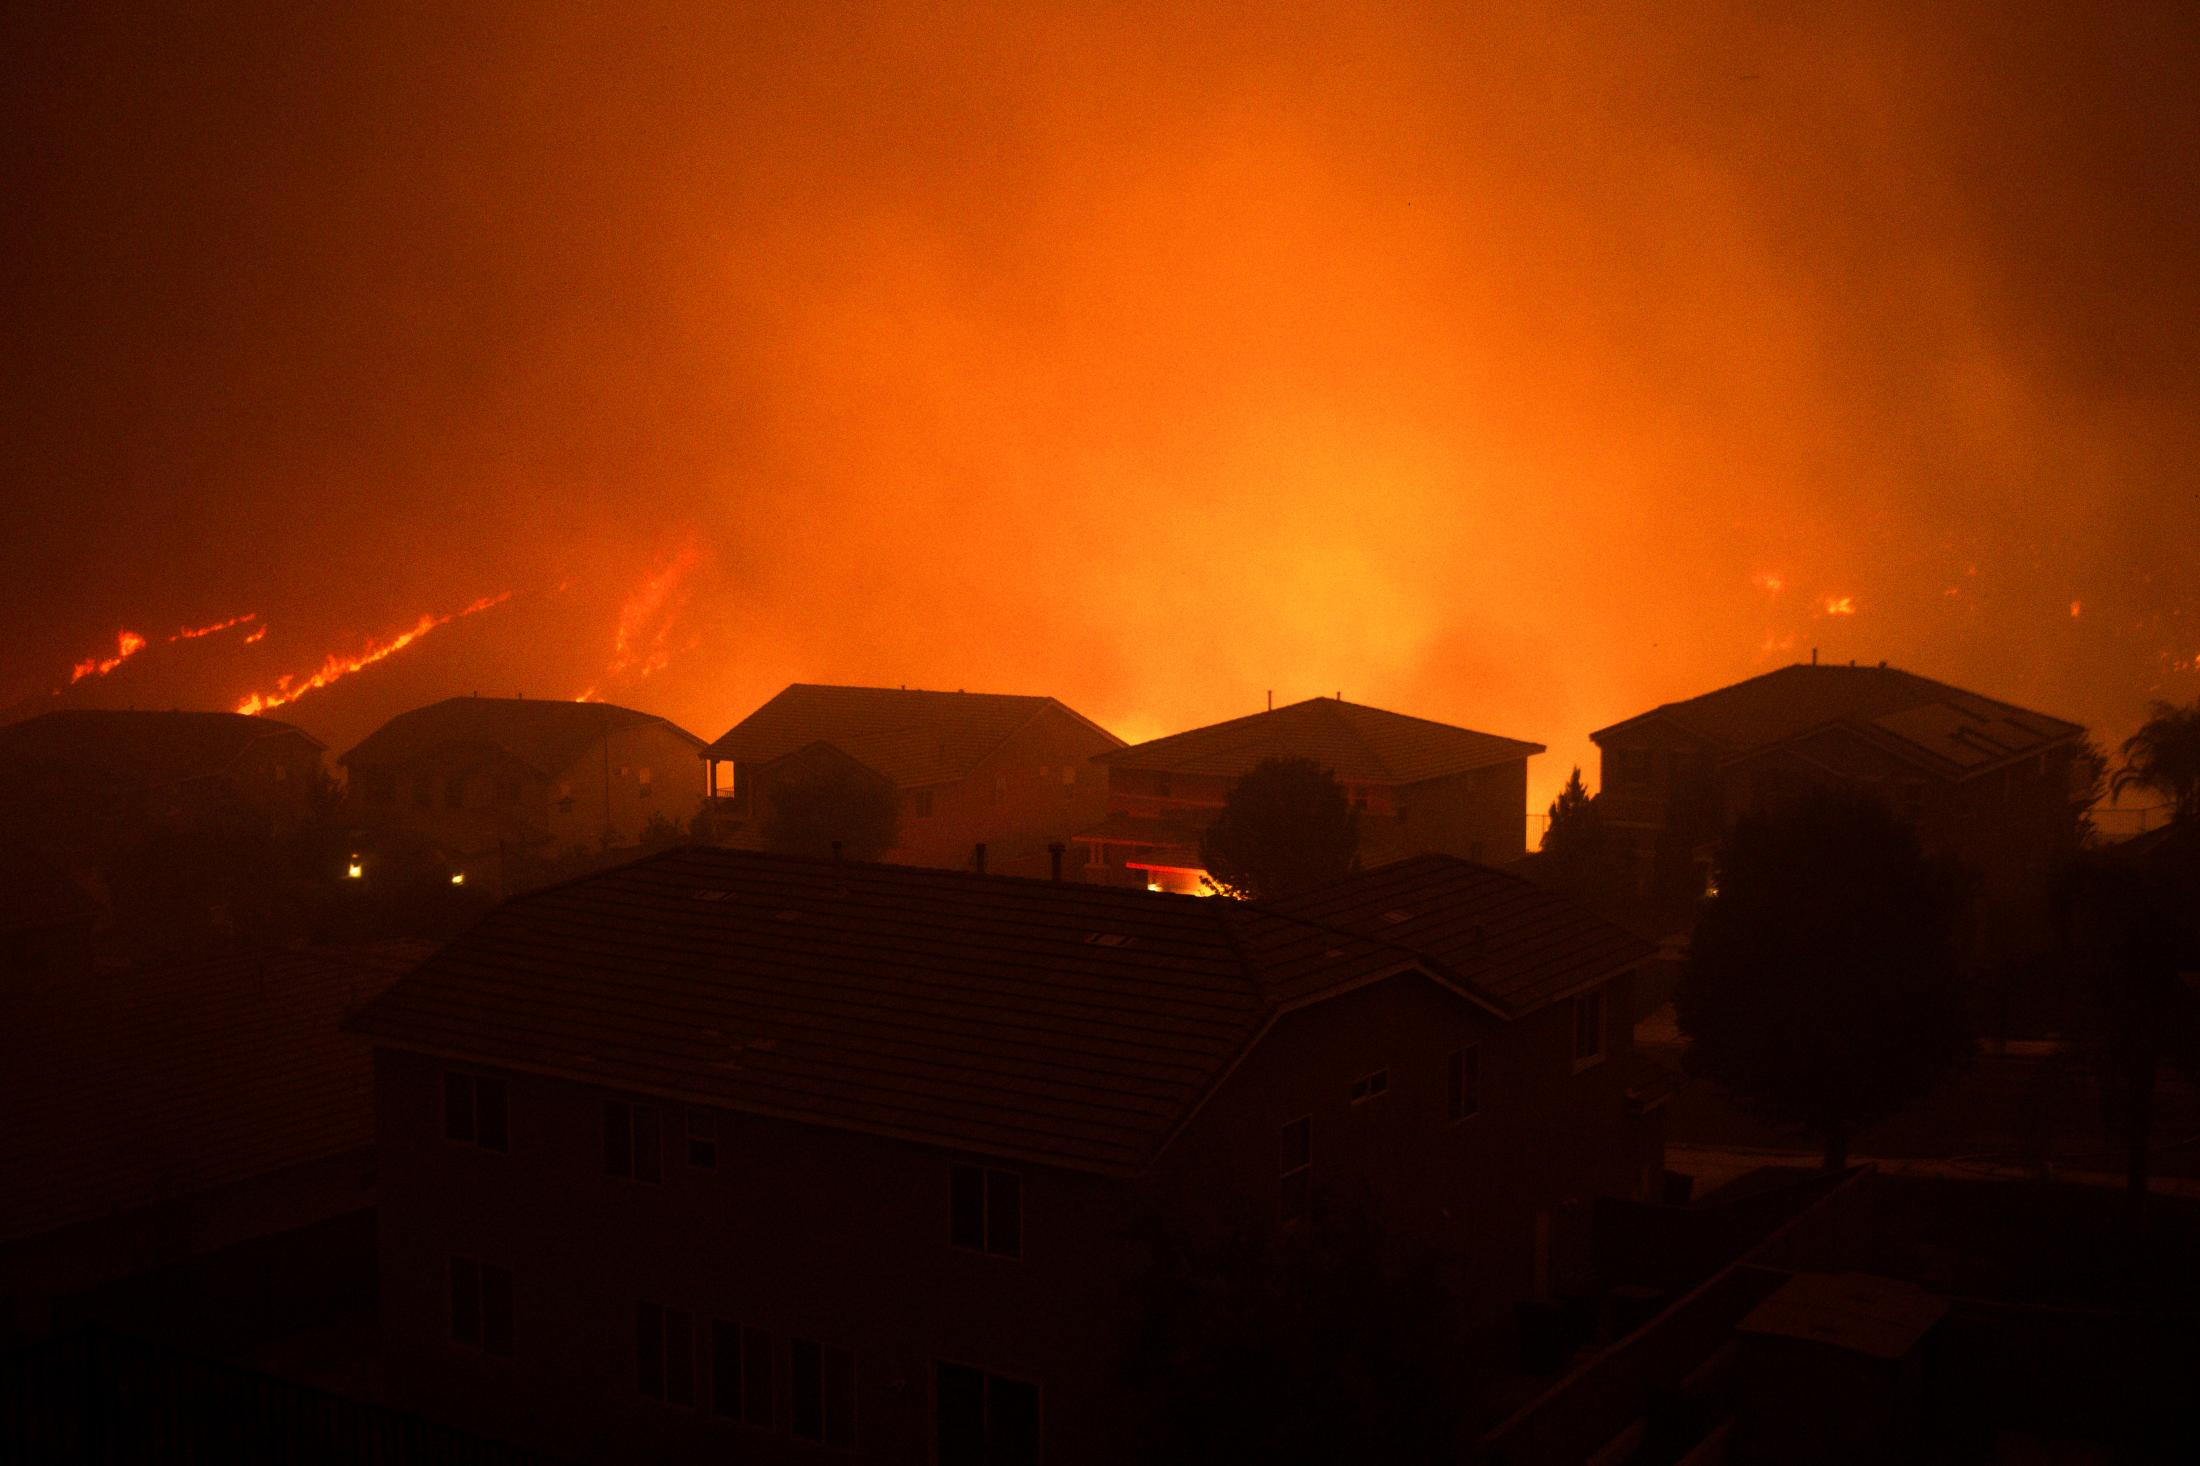 A neighborhood sits in the path of destruction as a violent wildfire destroys anything in its way.